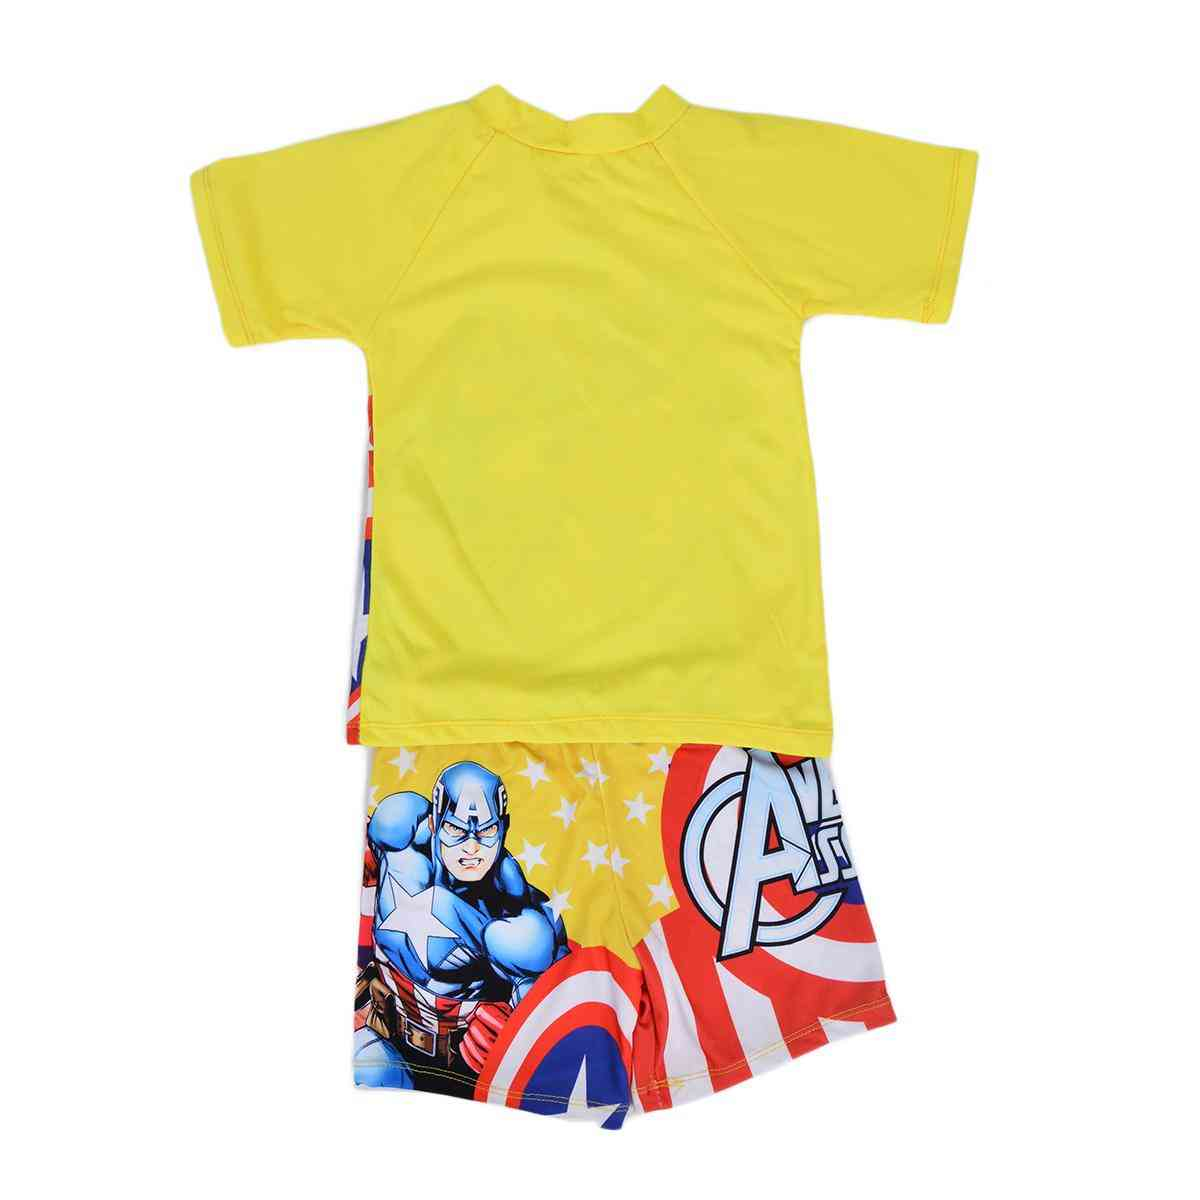 Captain America Swimming Suit for Boys - Yellow (2 to 3 Years)